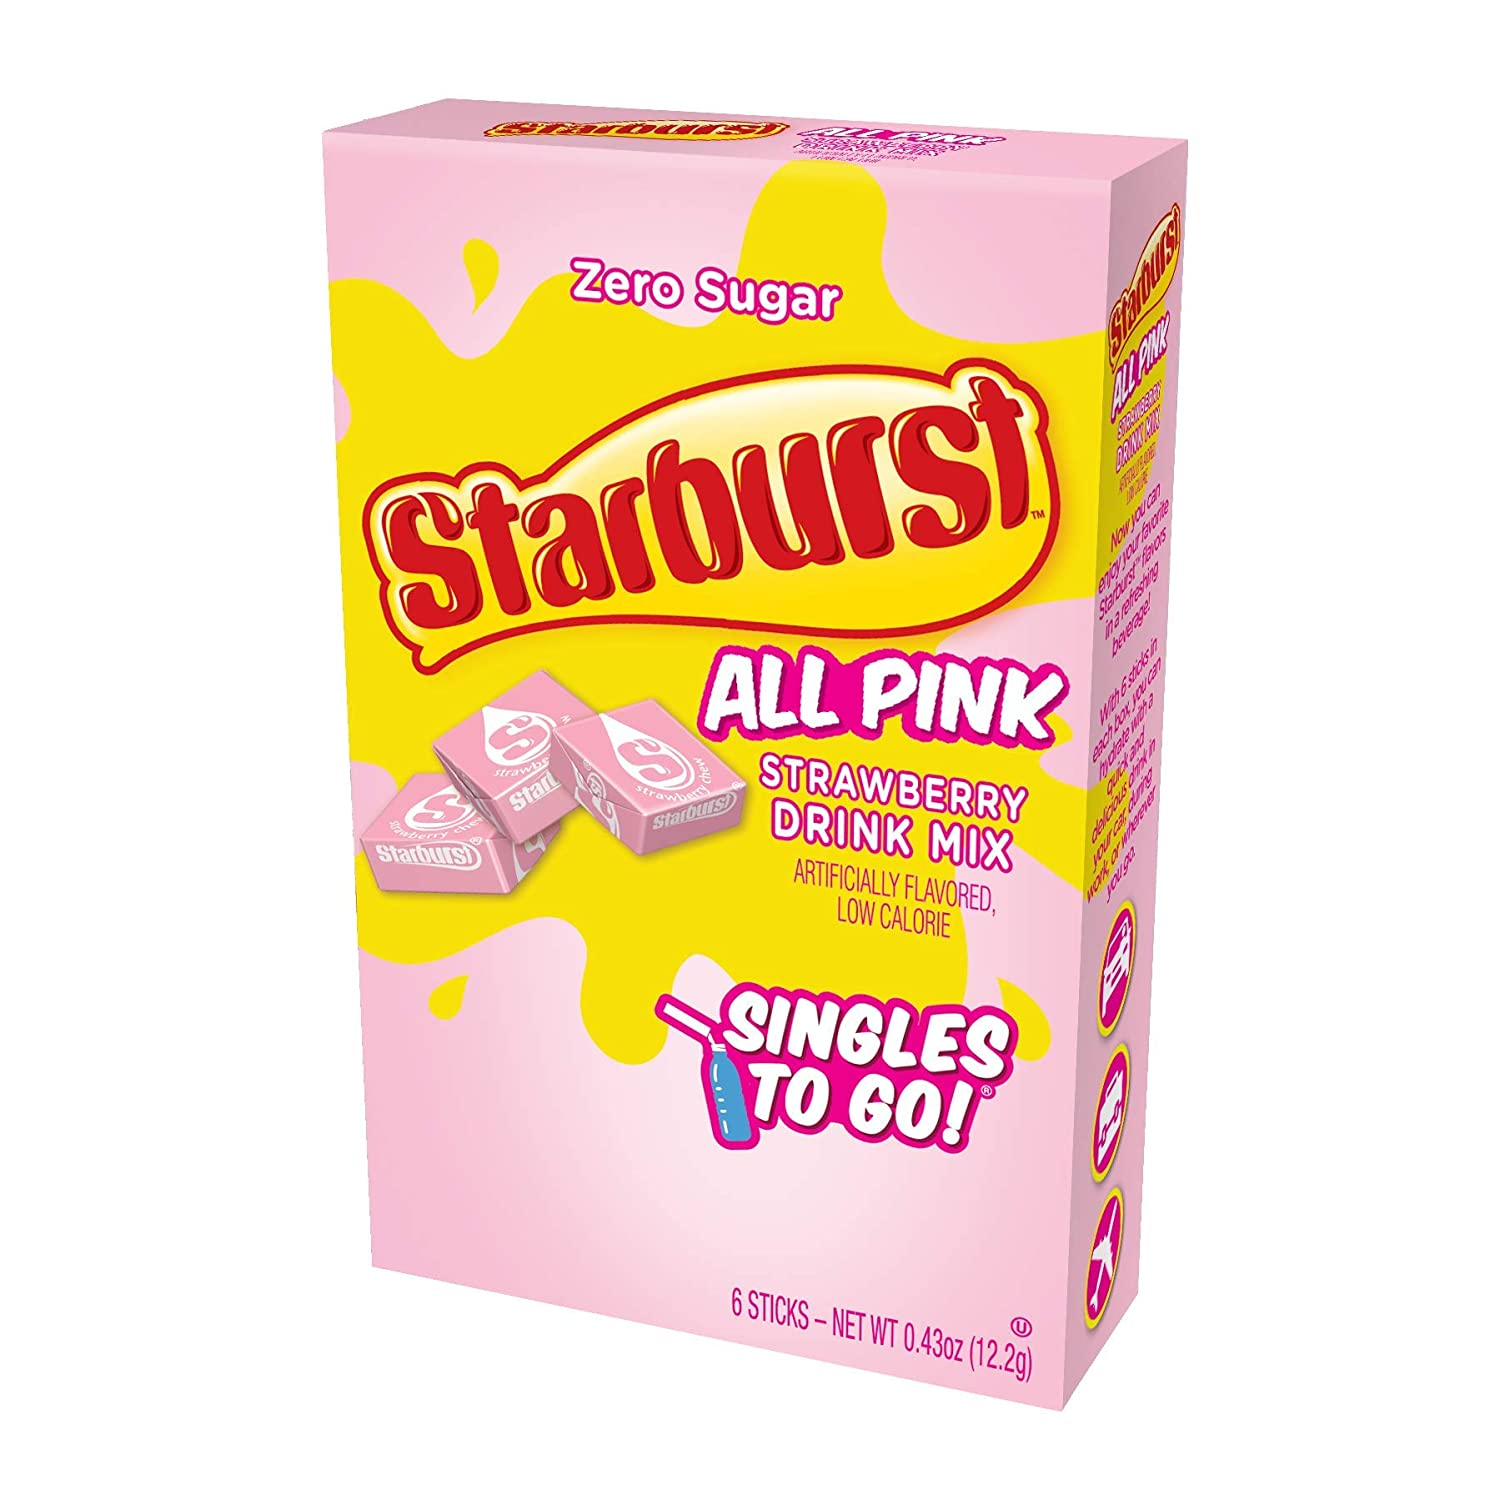 Starburst Singles To Go Powdered Drink Mix, All Pink Strawberry, 12 Boxes with 6 Packets Each - 72 Total Servings, Sugar-Free Drink Powder, Just Add Water, 0.87 Pound (Pack of 12)